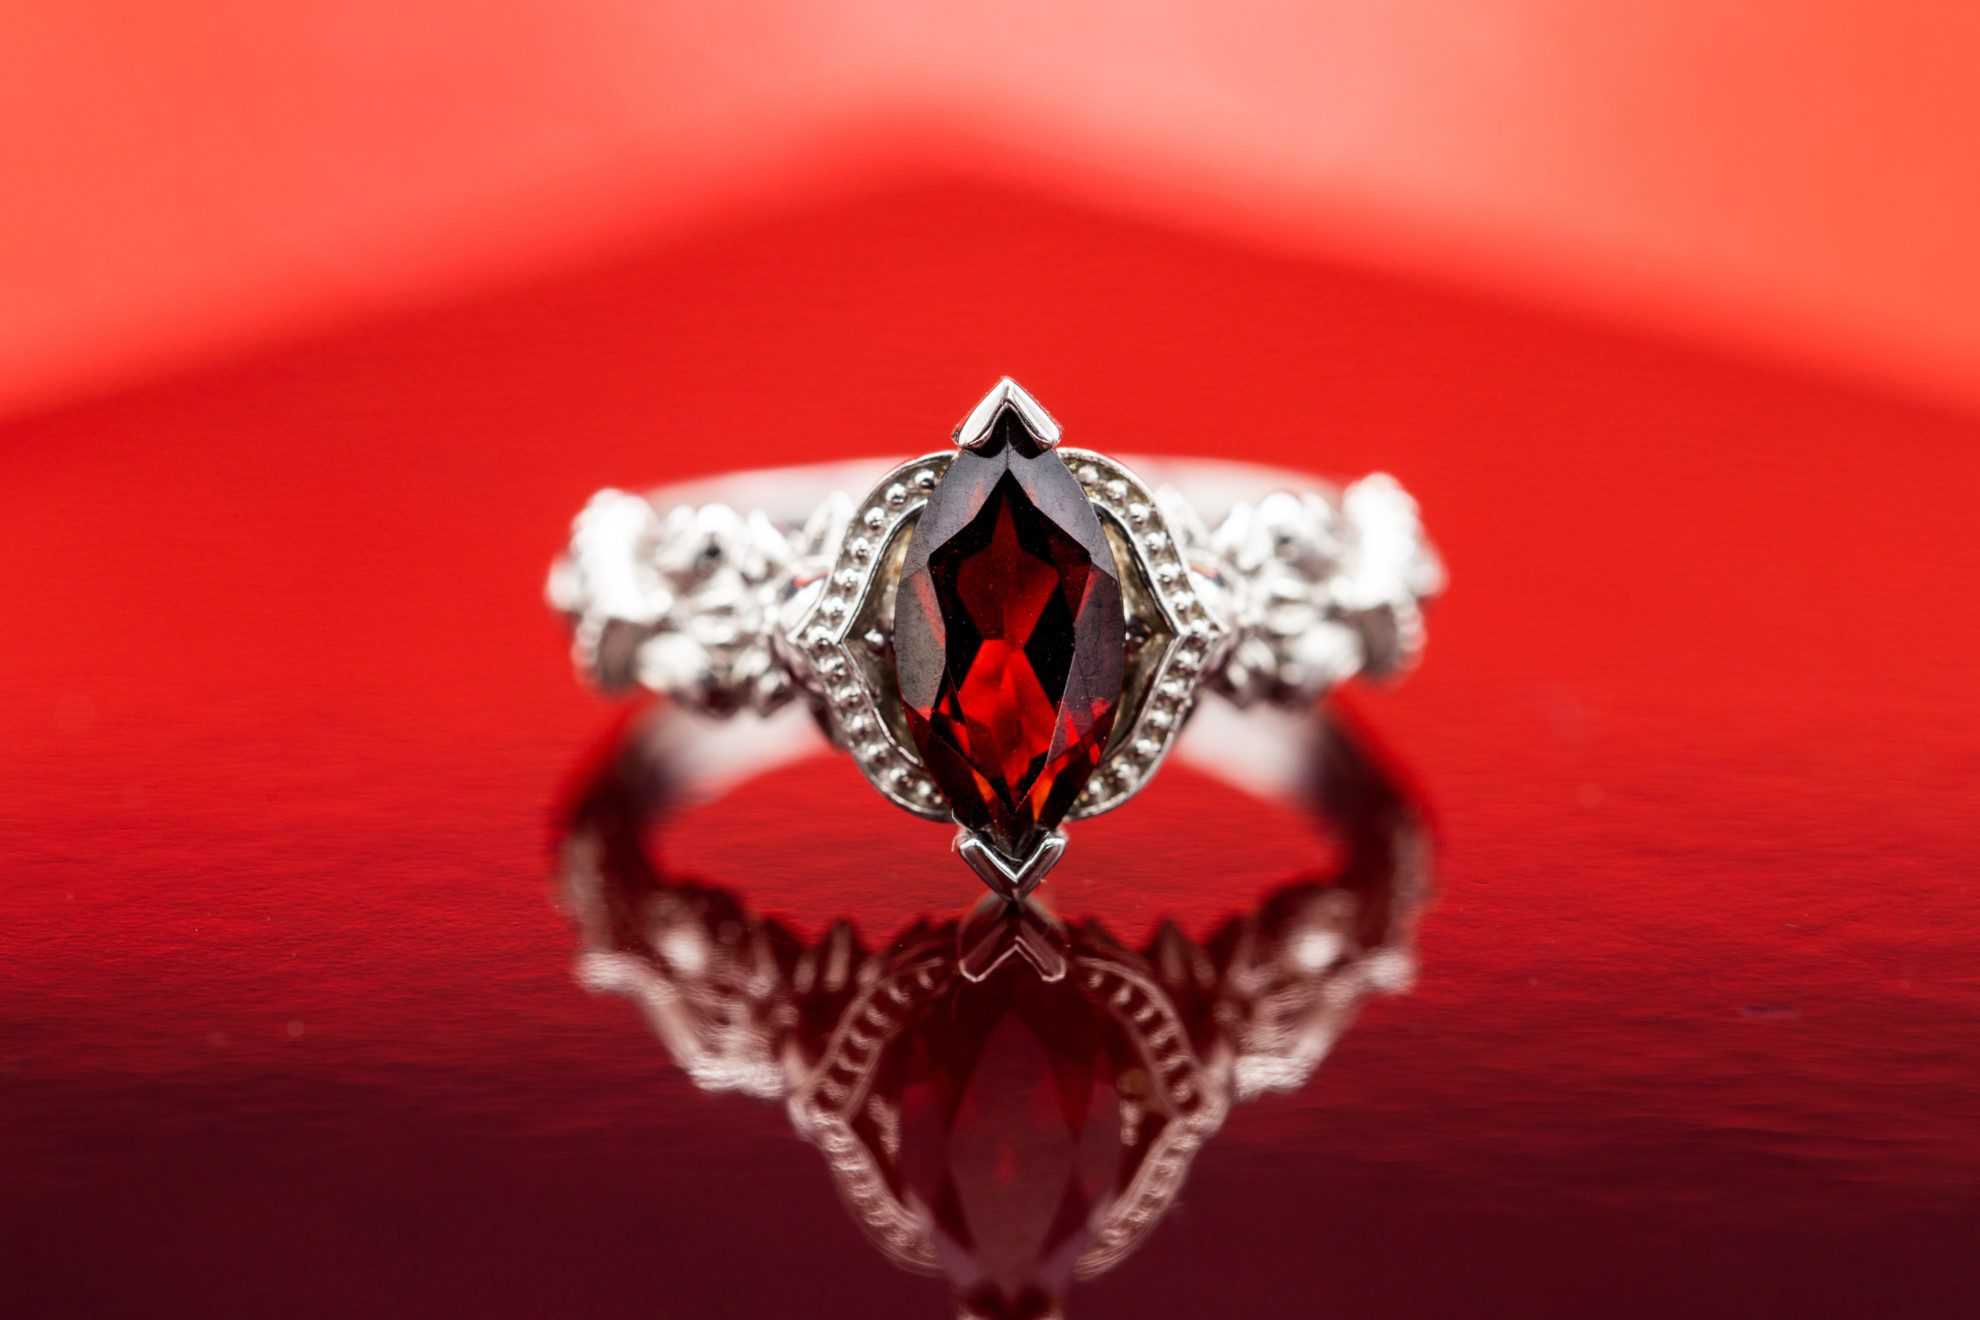 ad44fa45c9827 Red and More: Choosing Garnet Engagement Ring Stones - International ...